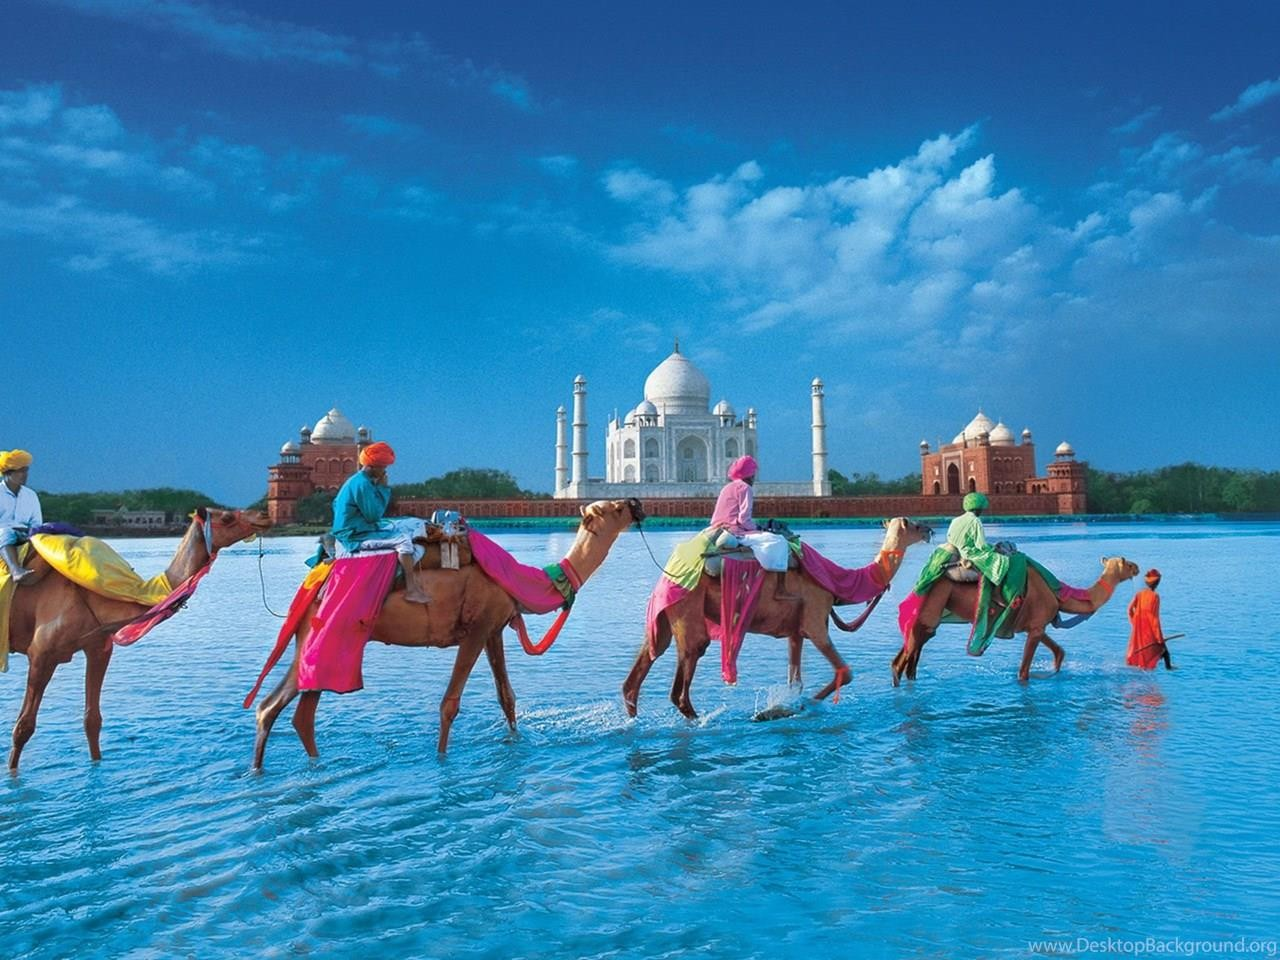 Viet_Dung-185209115252-348427_beautiful-taj-mahal-hd-wallpapers_2000x1440_h.jpg